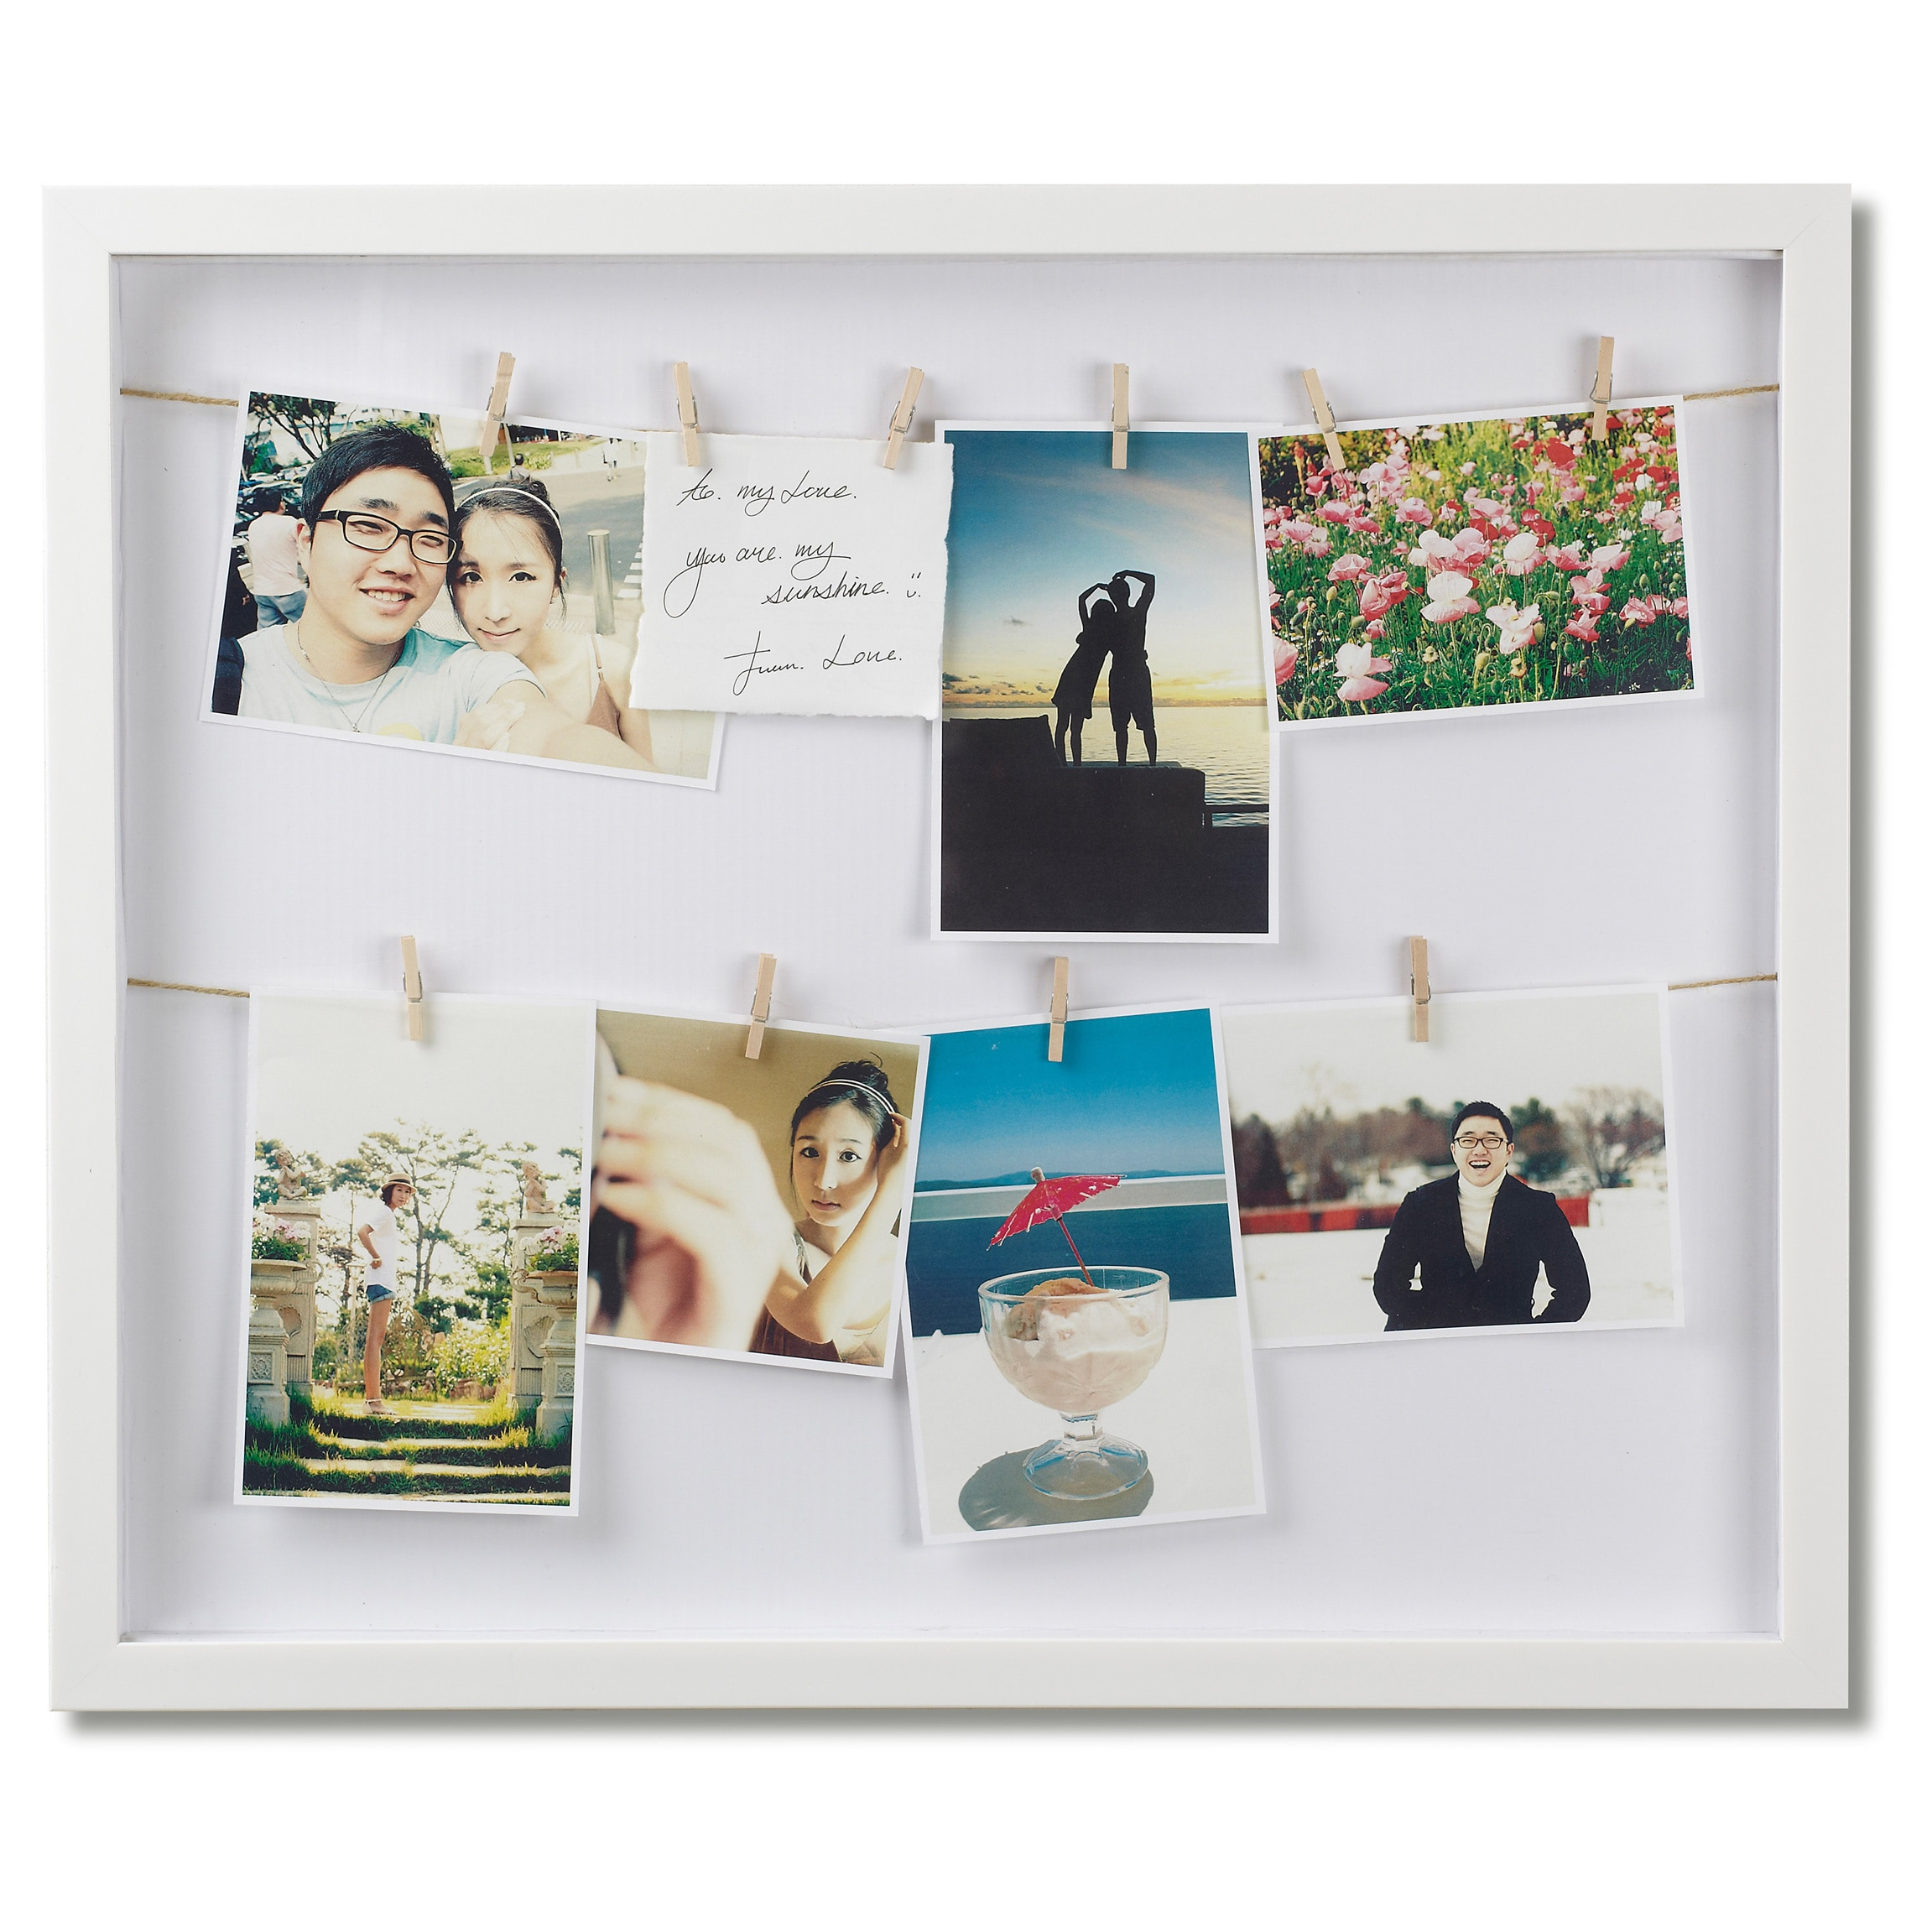 Umbra Clothesline Photo Display Picture Frame - Free Shipping On Orders  Over $45 - Overstock.com - 17685110